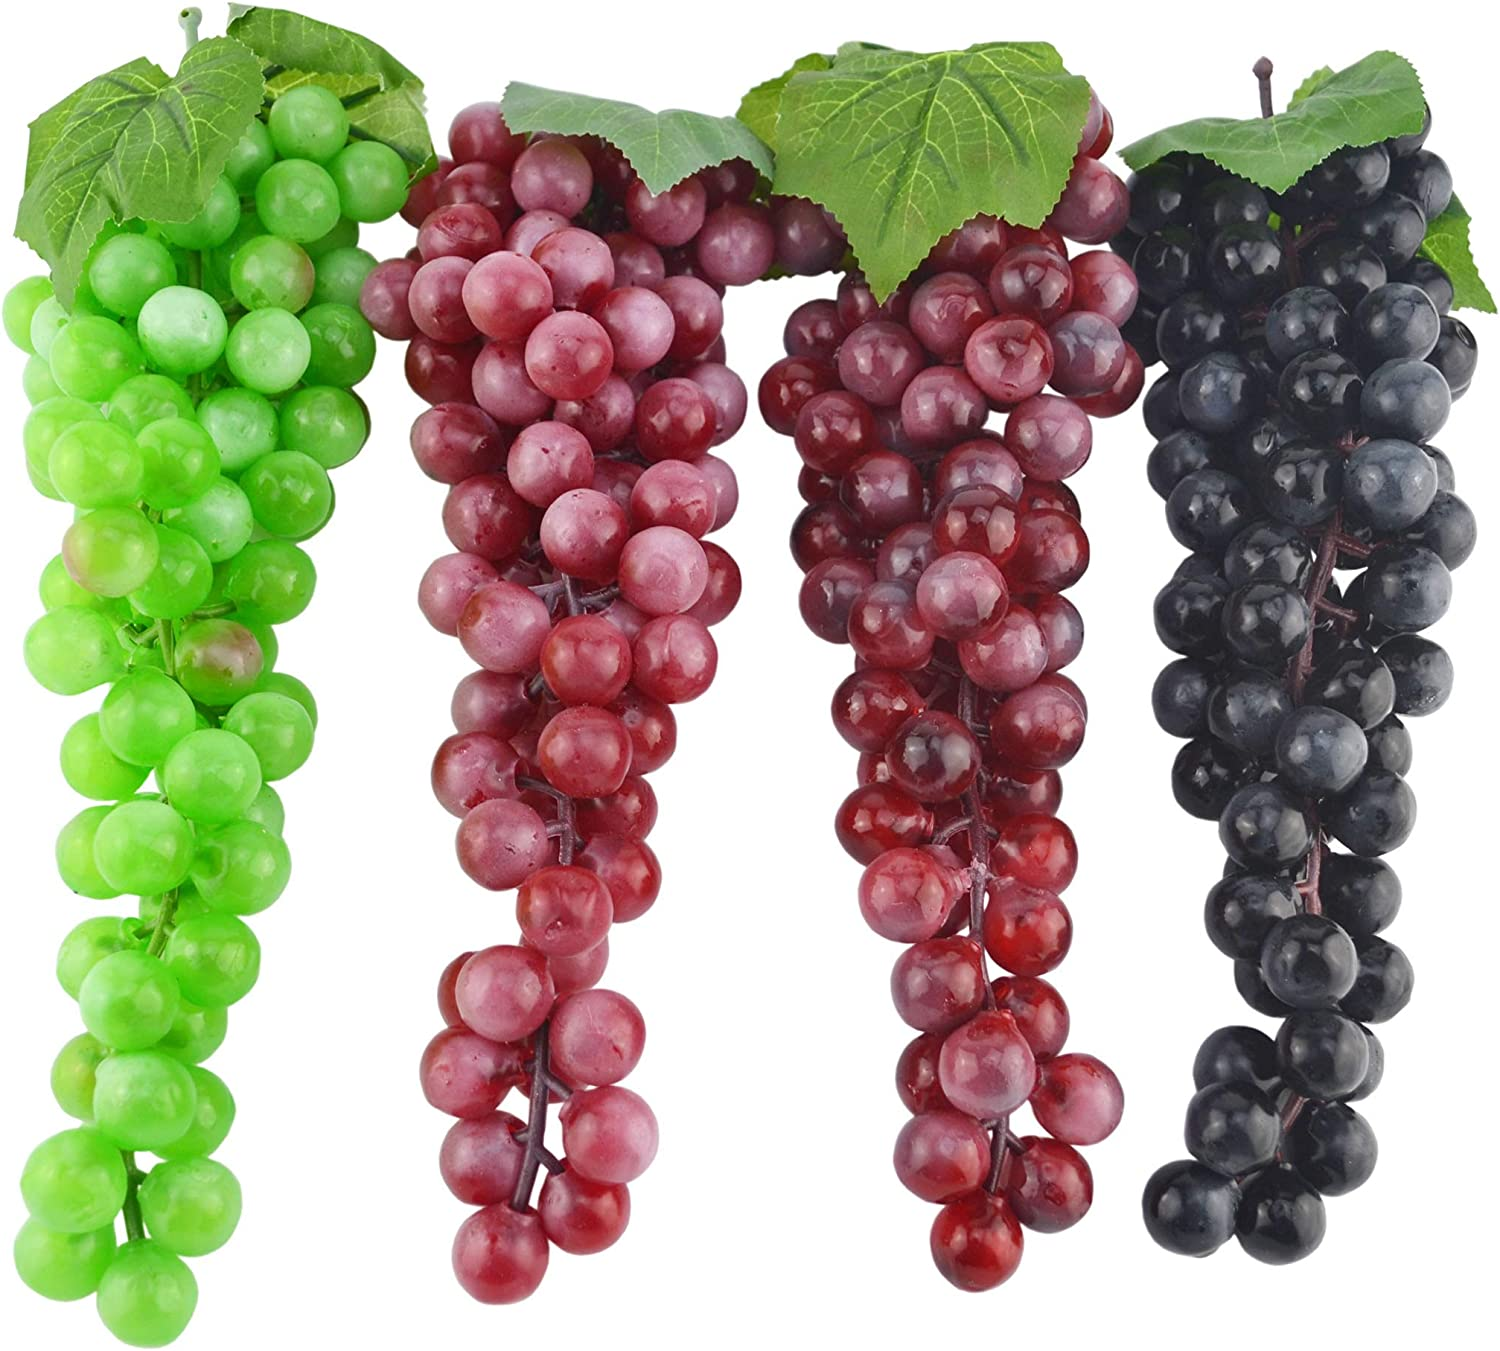 JEDFORE 12 Inches Artificial Grapes Cluster Rubber Frosted Grape Bundles Decorative Grapes Bunches for Vintage Wedding Favor Fruit Wine Decor Faux Fruit Props (Black, Red, Green, Purple - 4 Pack)